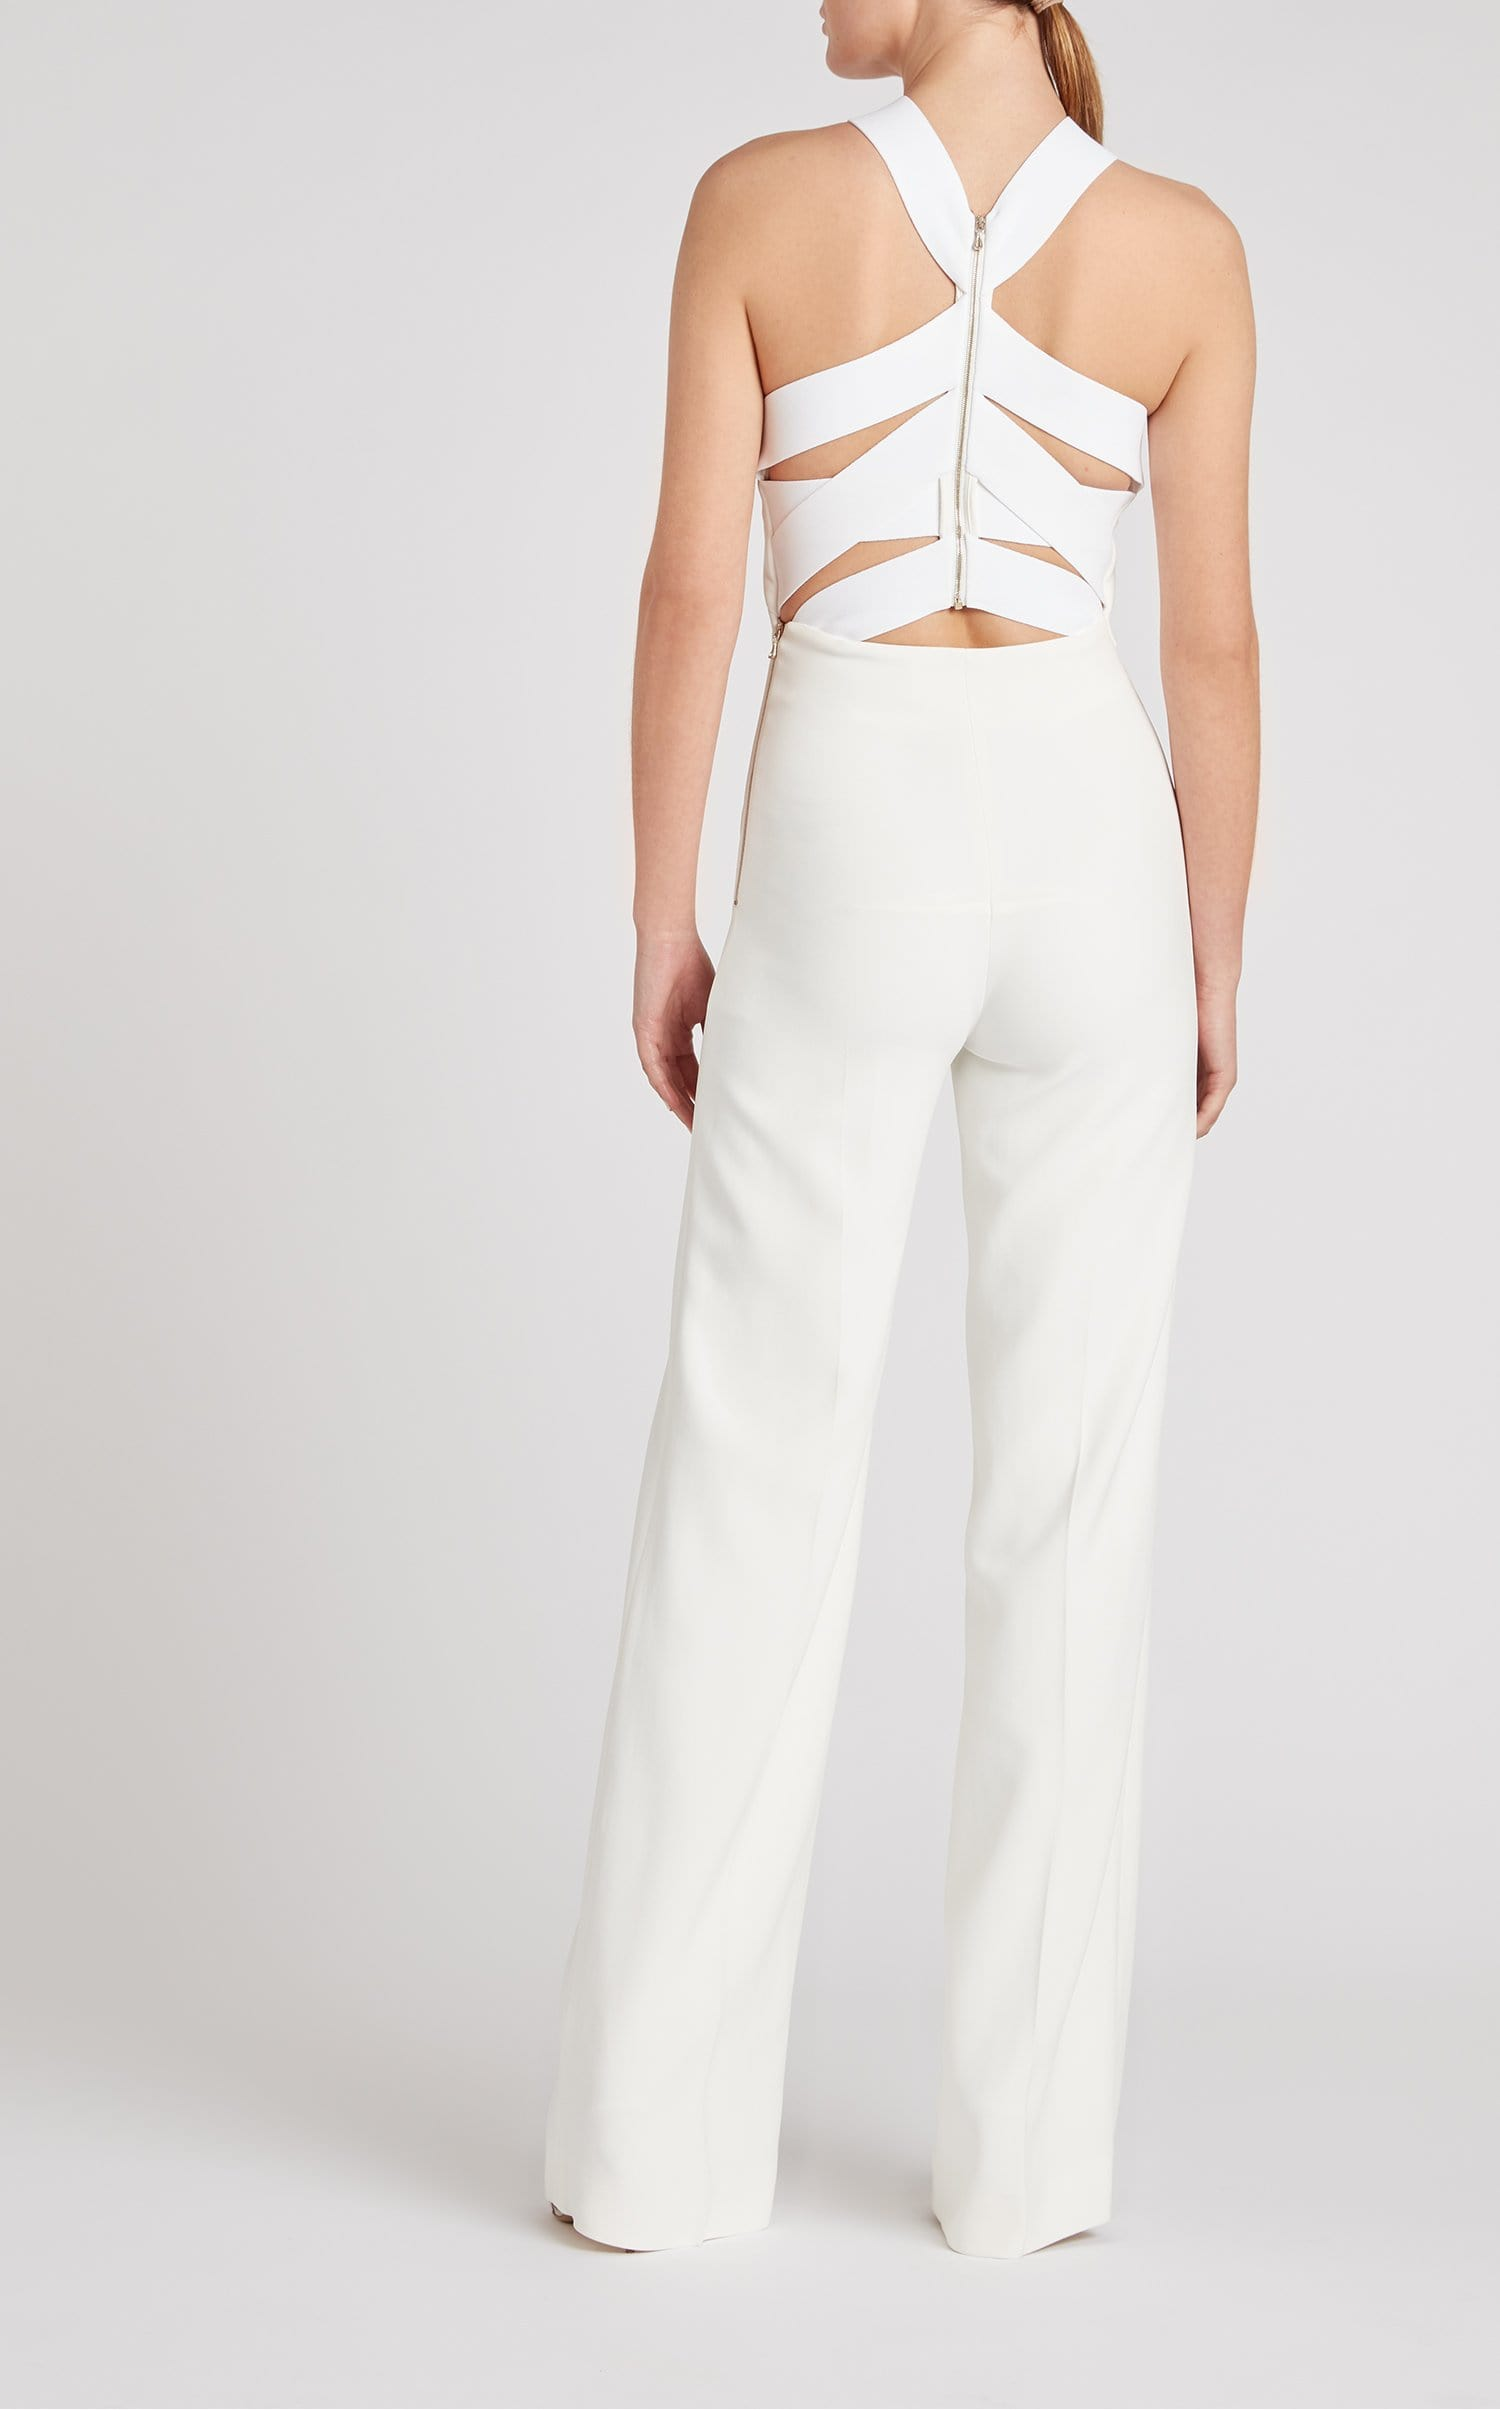 Shotwick Jumpsuit In White from Roland Mouret